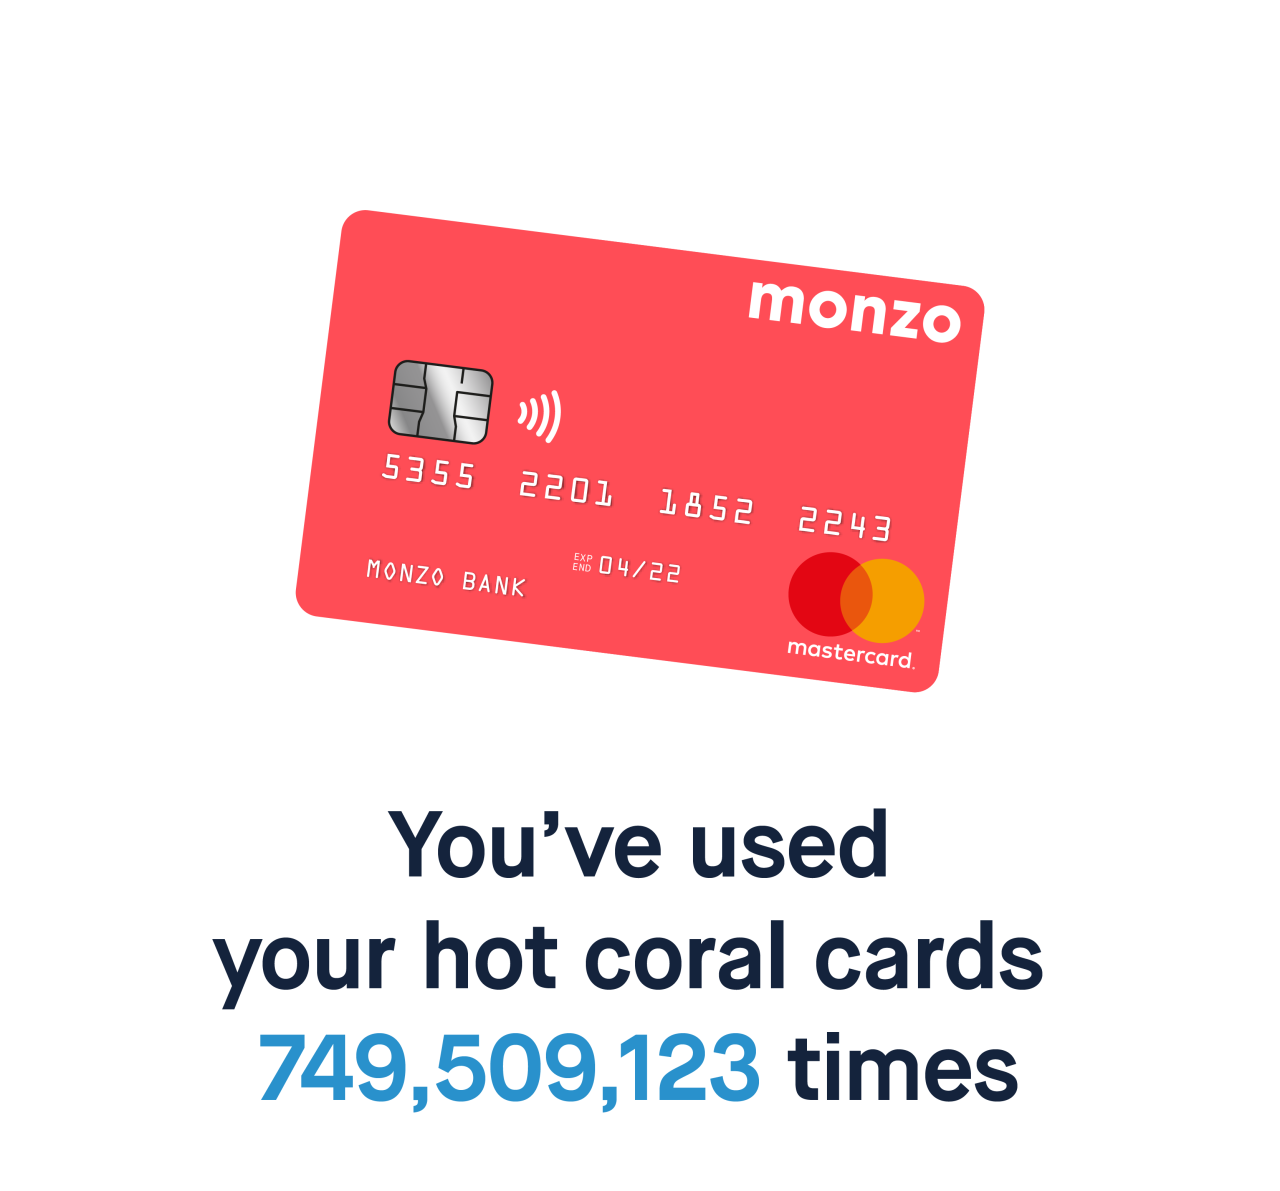 You've used your hot coral cards 749,509,123 times